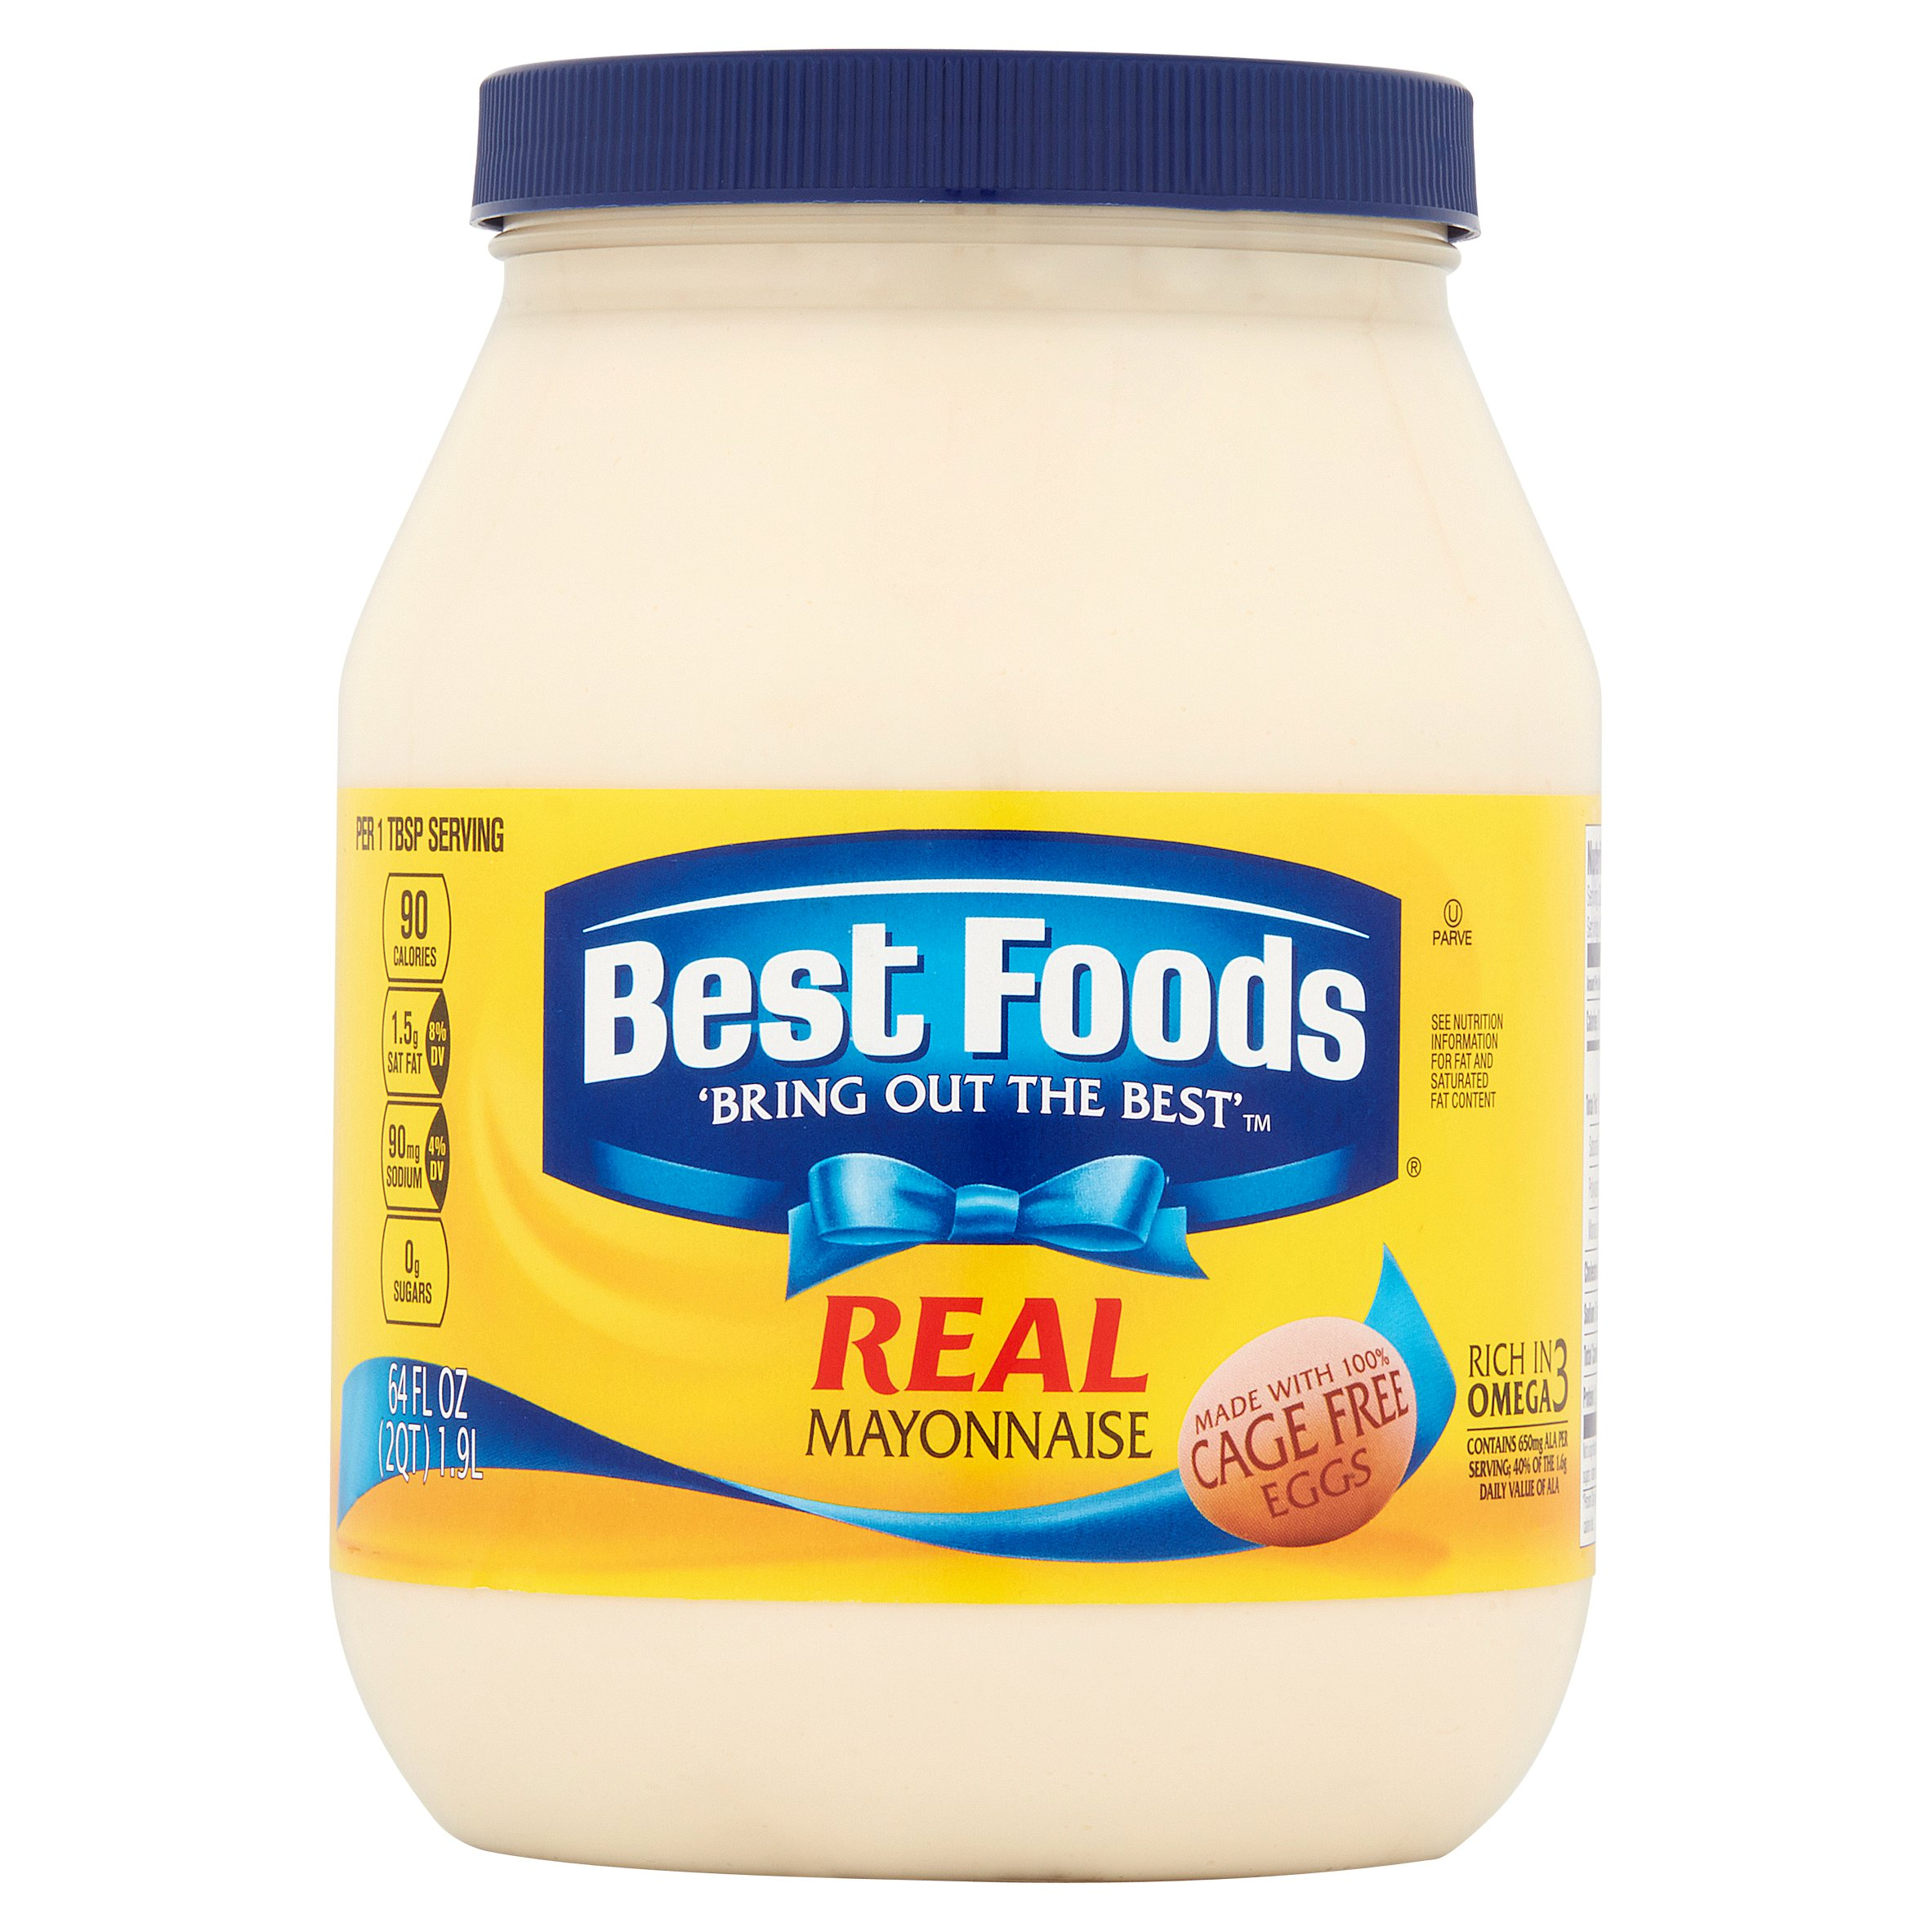 Best Foods 'Bring Out the Best' Real Mayonnaise, 64 fl oz